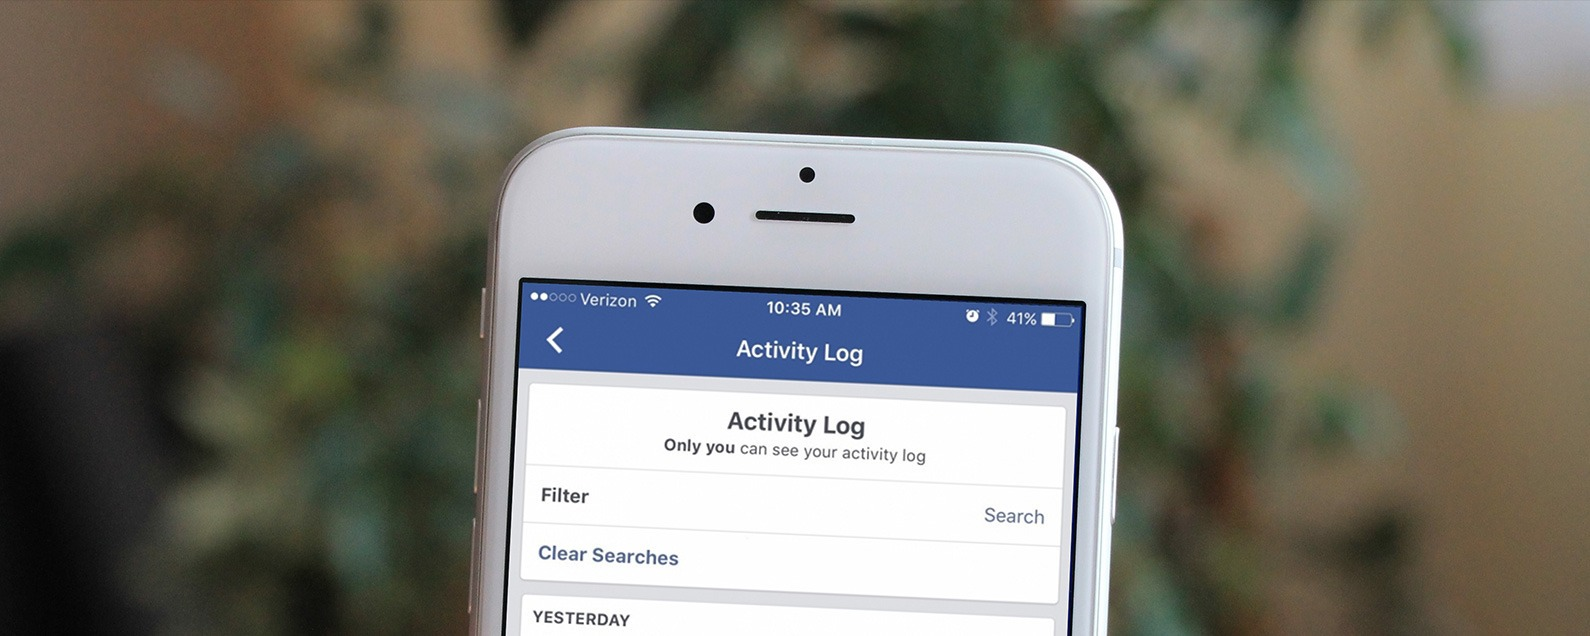 How to Clear Your Facebook Search History on iPhone | iPhoneLife com